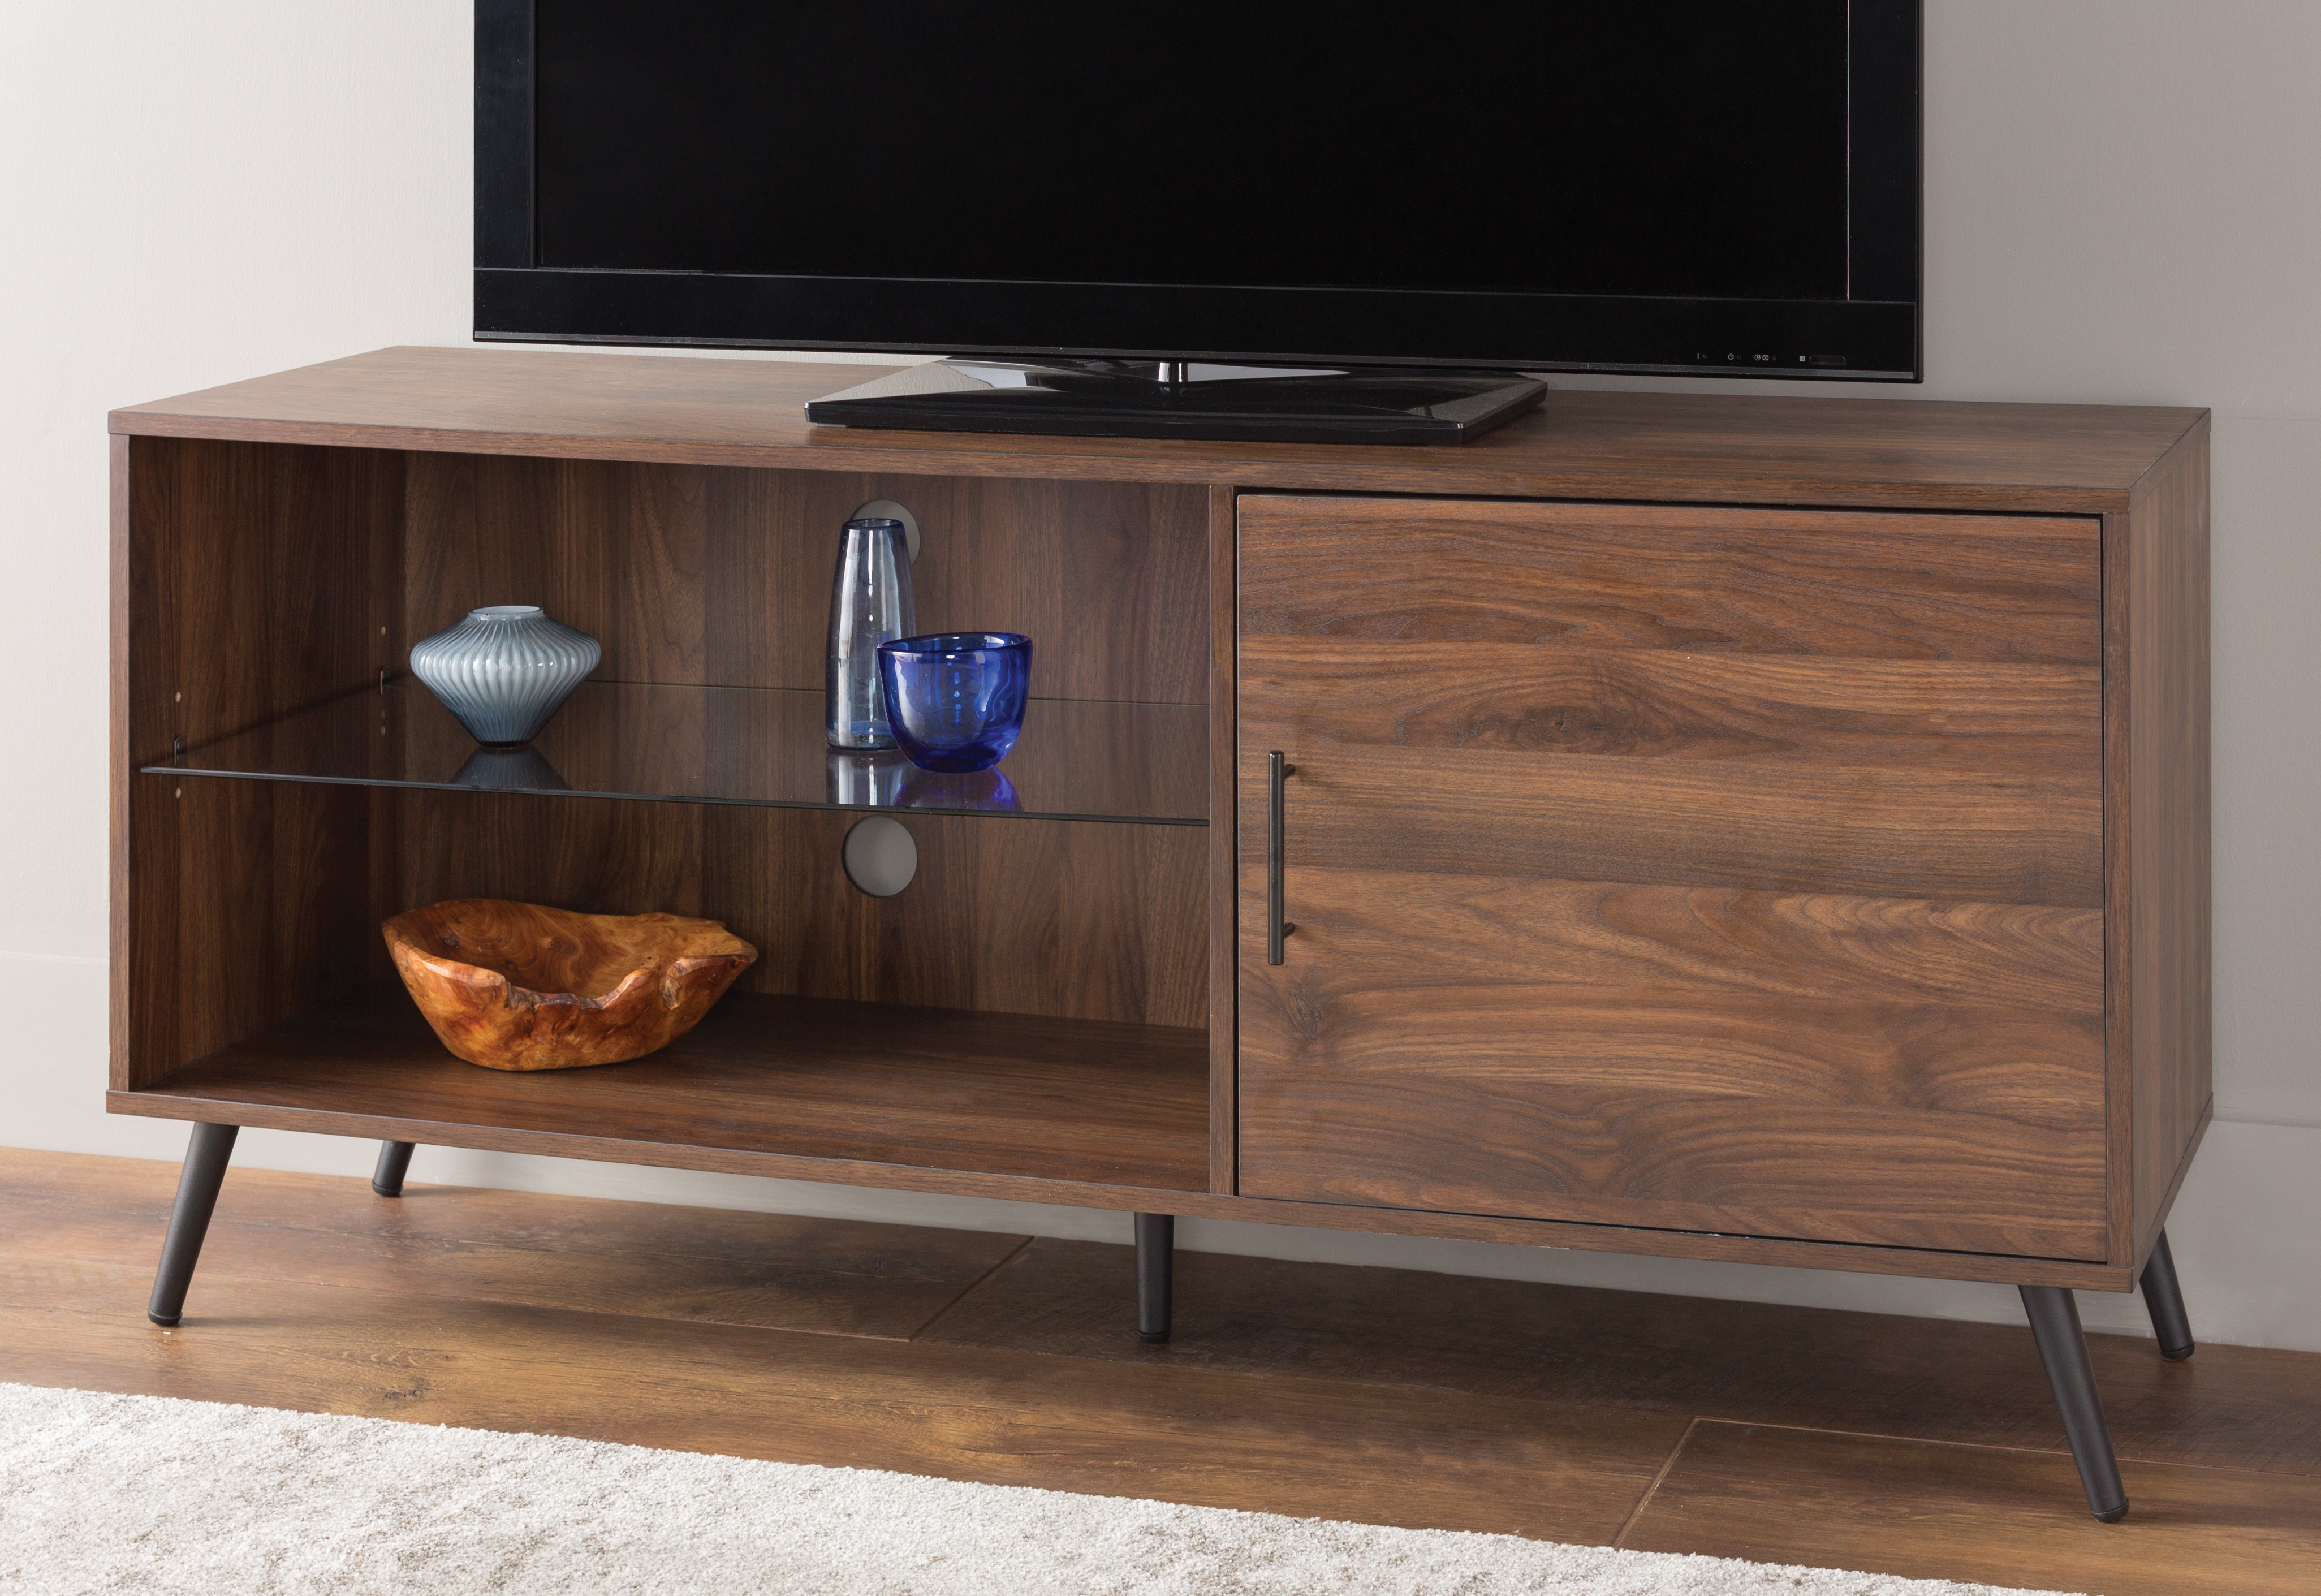 Wayfair Regarding Canyon 64 Inch Tv Stands (View 5 of 20)